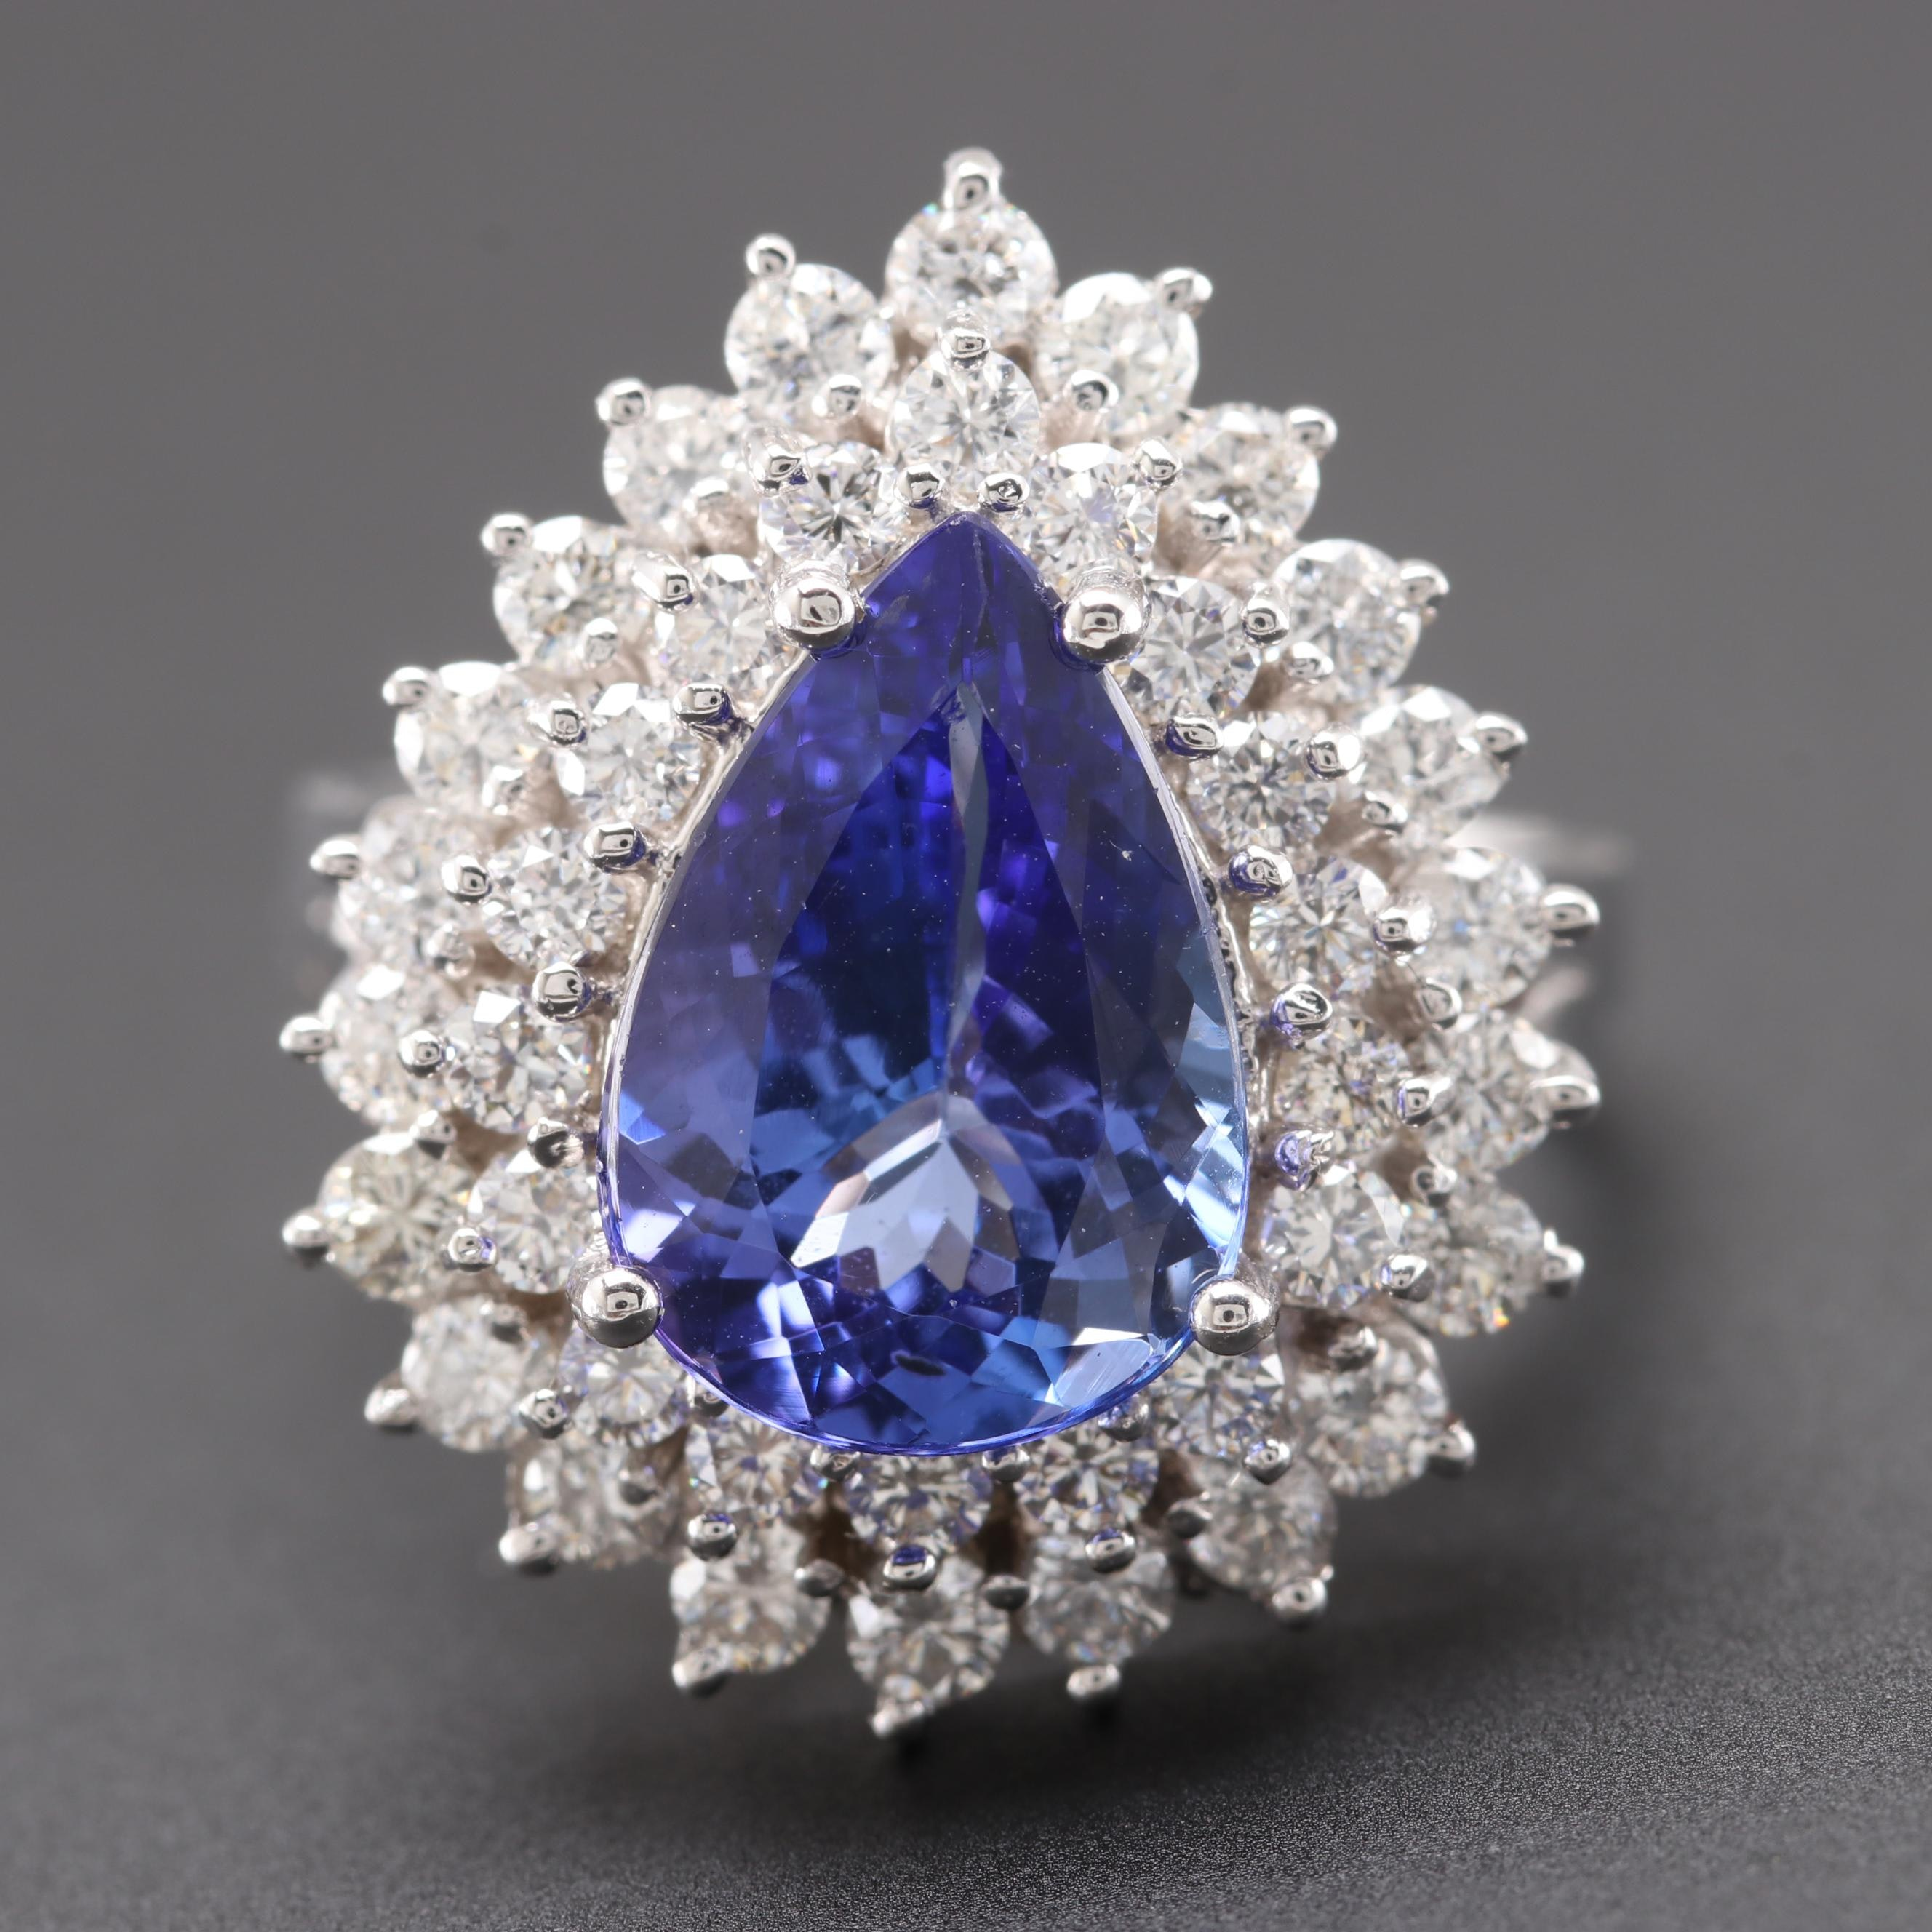 14K White Gold 3.65 CT Tanzanite and 1.42 CTW Diamond Ring